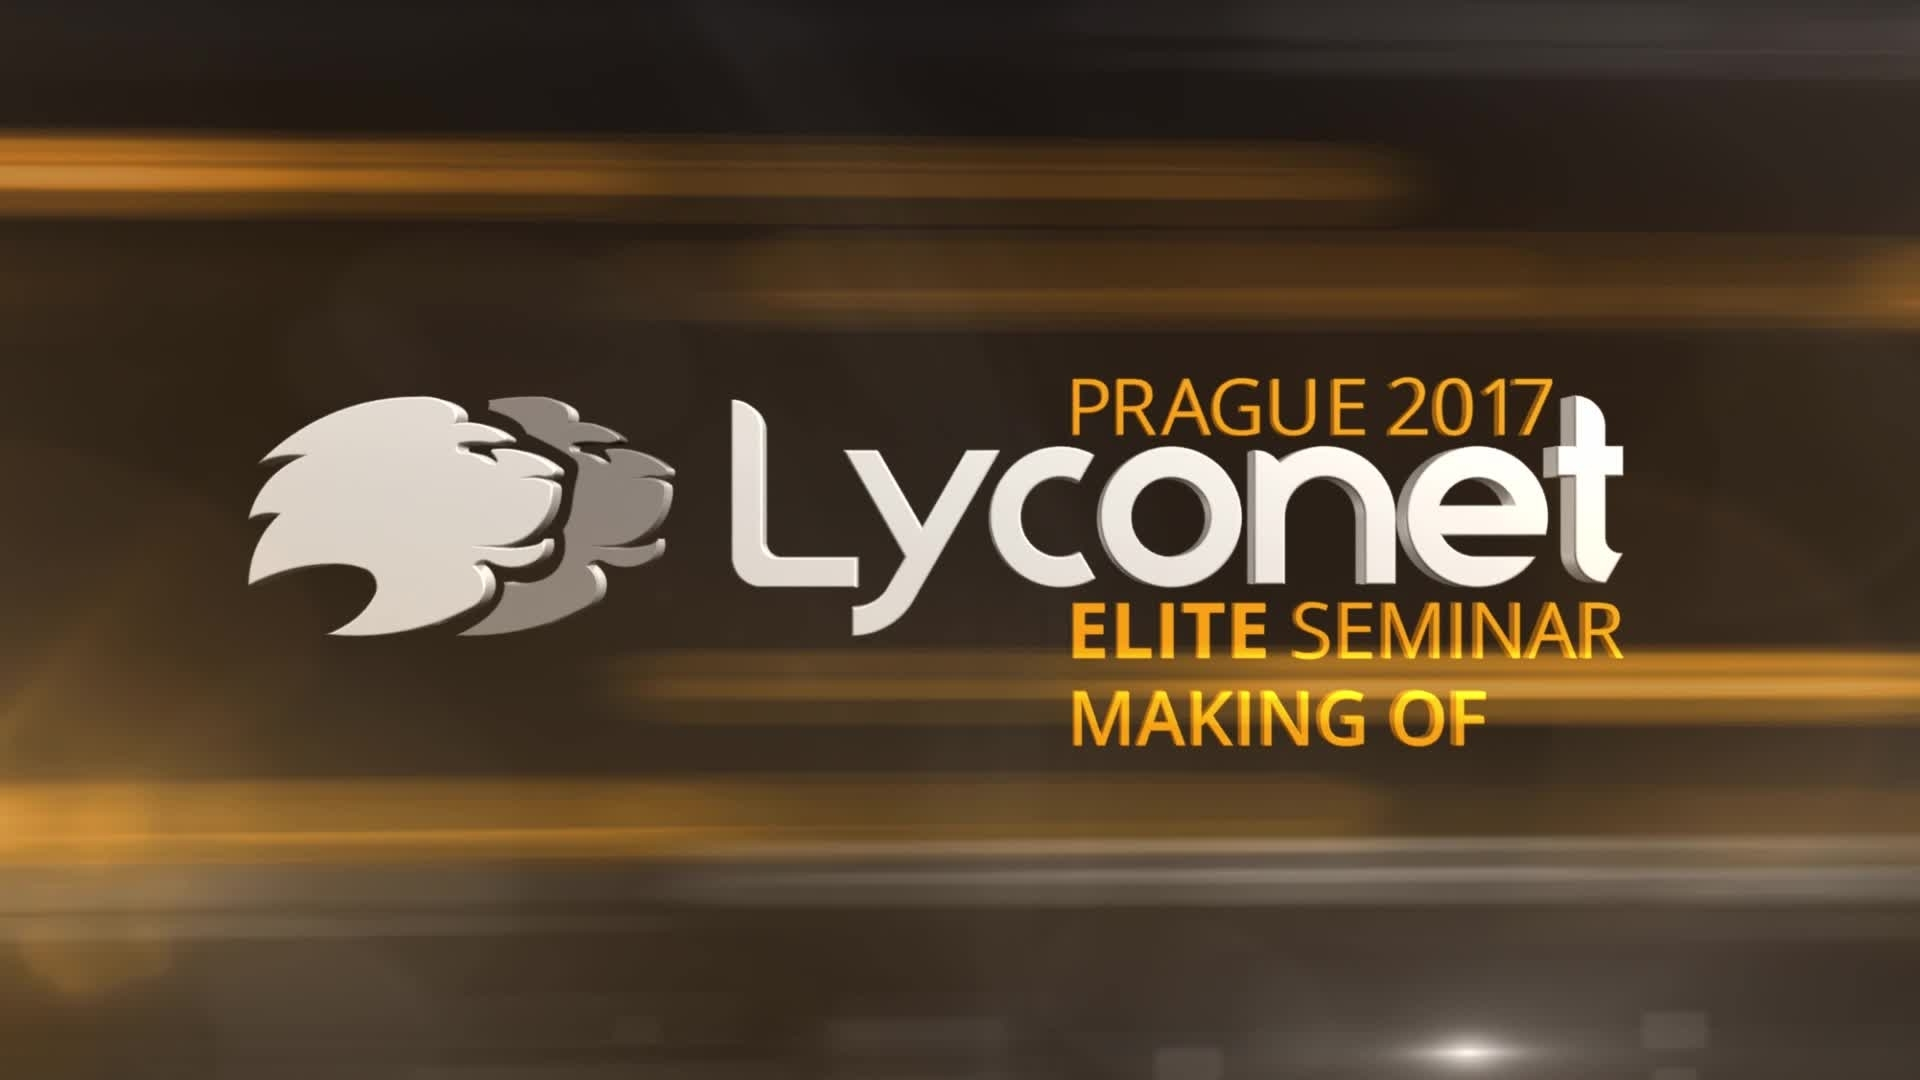 Making Of - Lyconet Elite Seminar Prague 2017